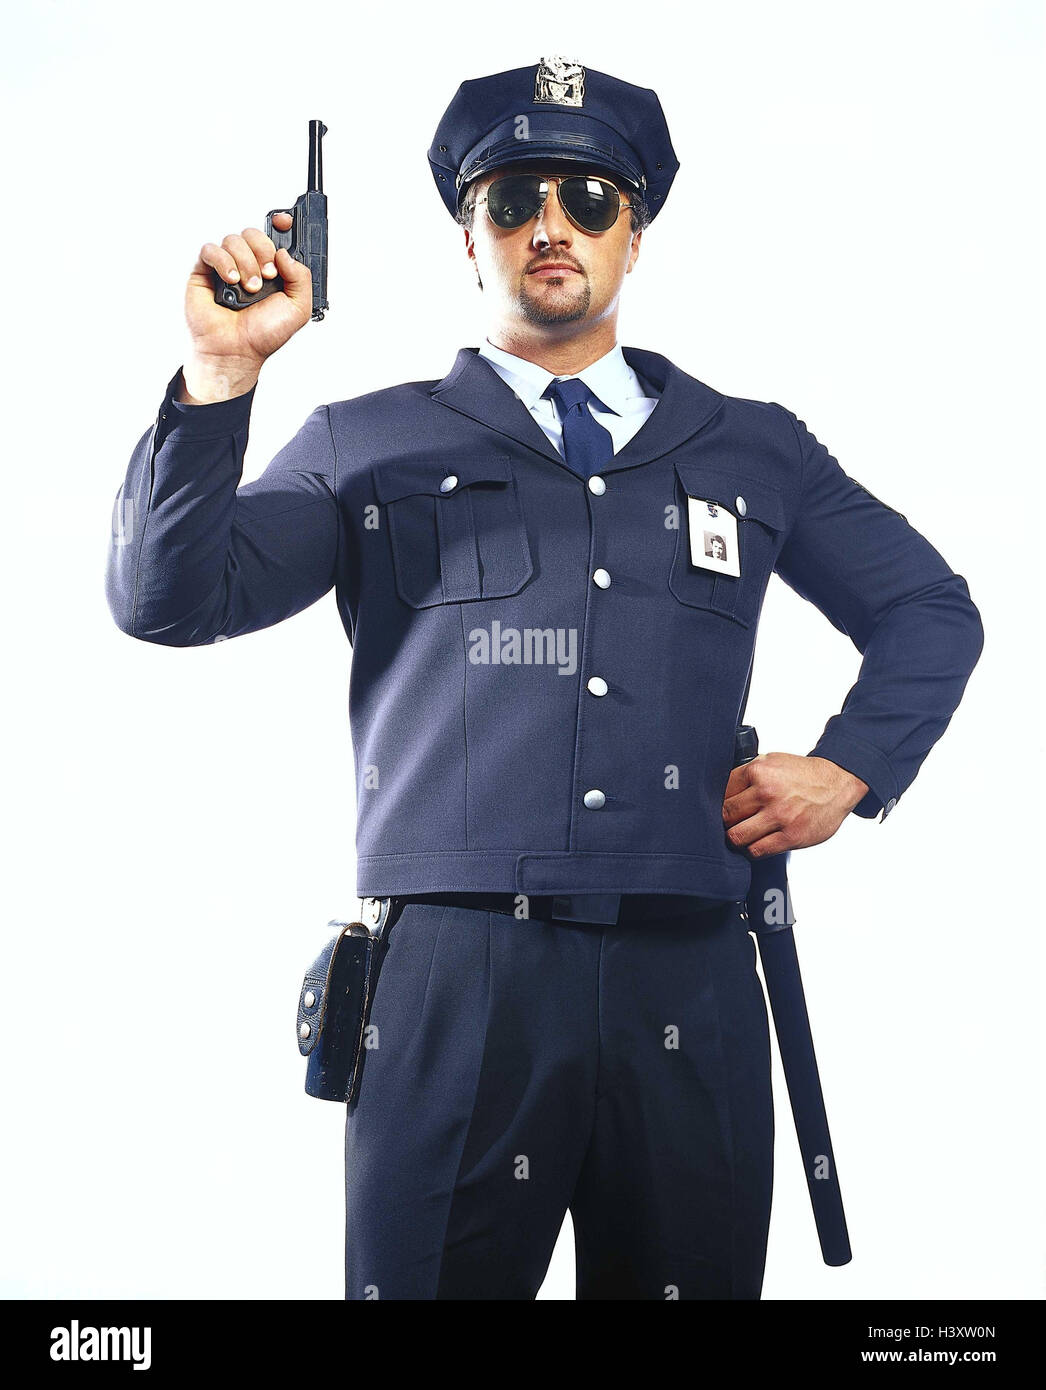 Policeman, watchman, sunglasses, gun, studio, cut out, man, occupation, police, arms, security staff, marking, watch, - Stock Image